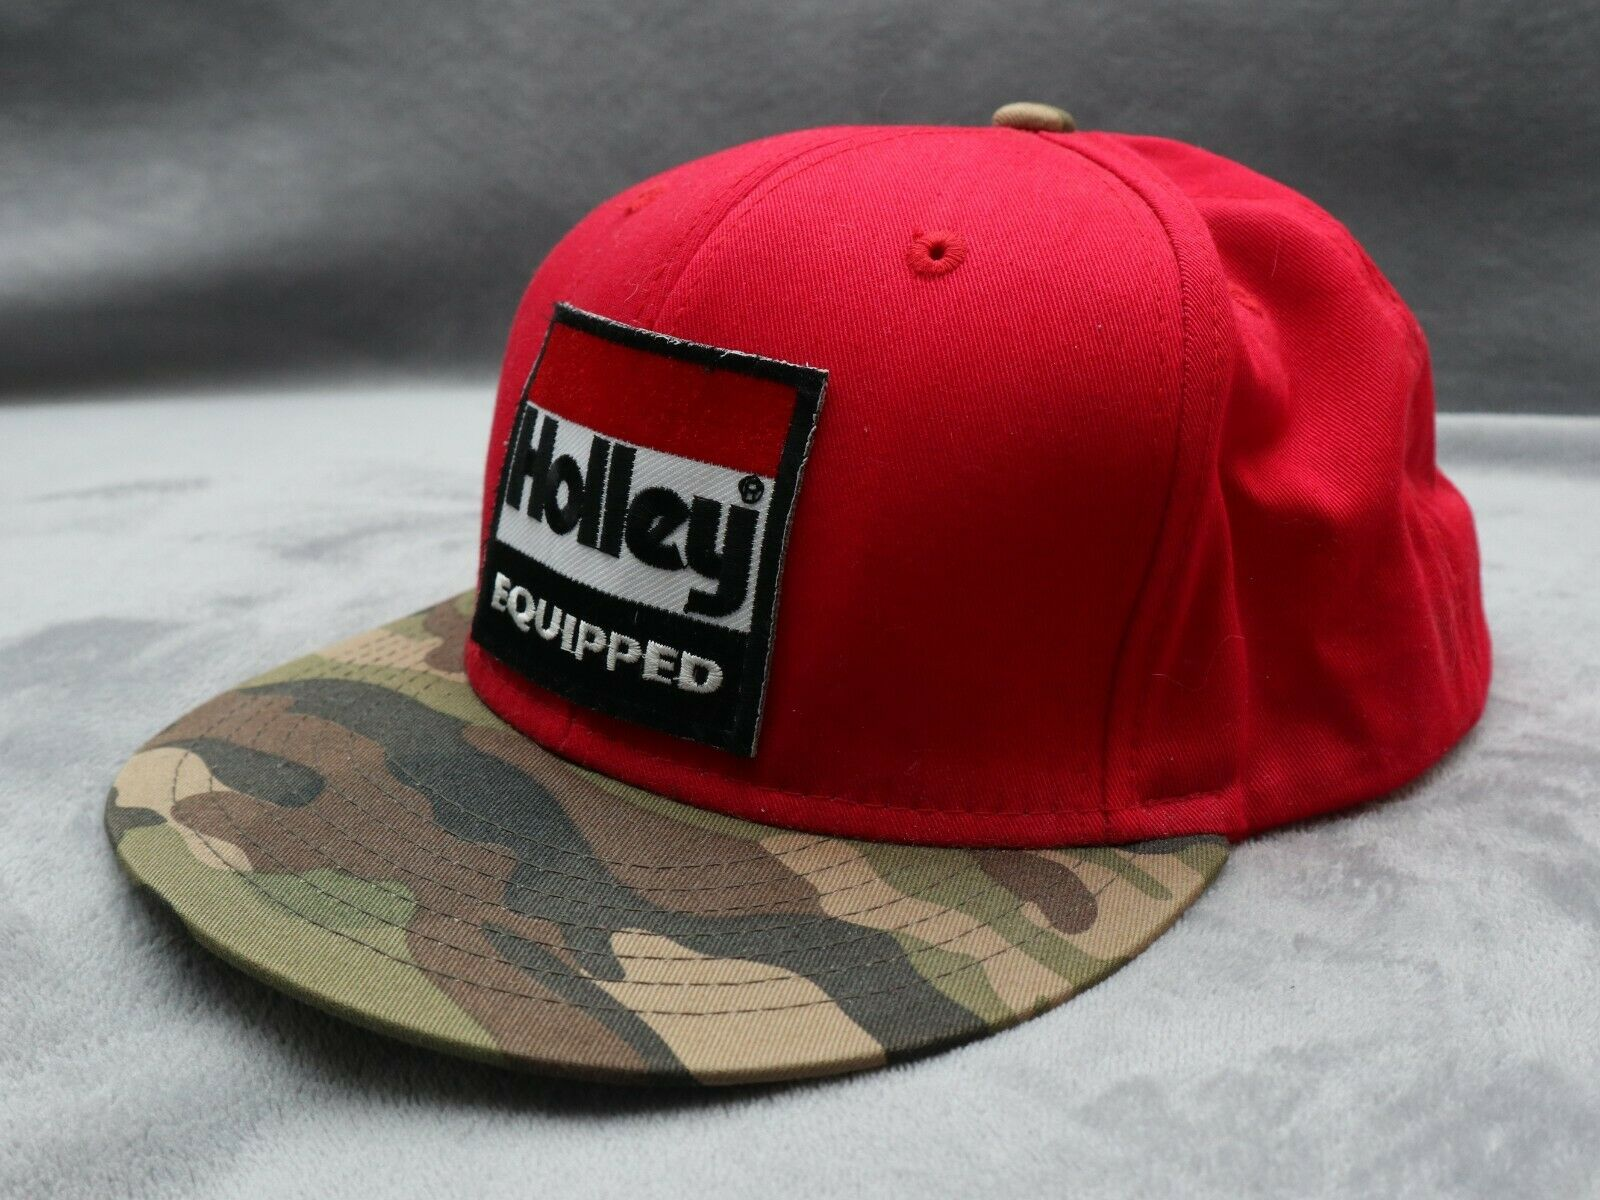 Holley Equipped red camo snapback - image 3